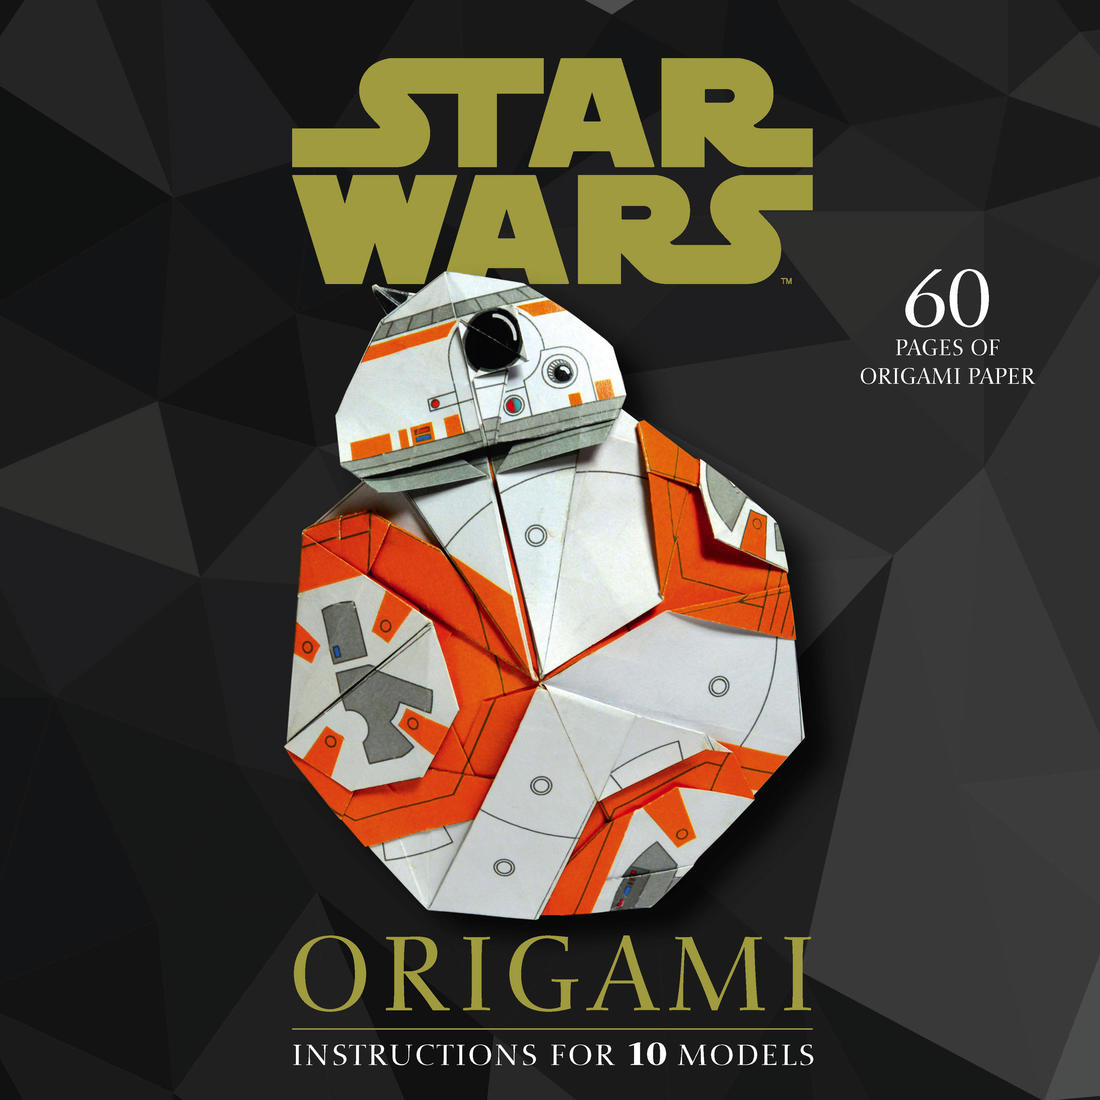 origami yoda instructions | Star wars origami, Origami yoda ... | 1100x1100